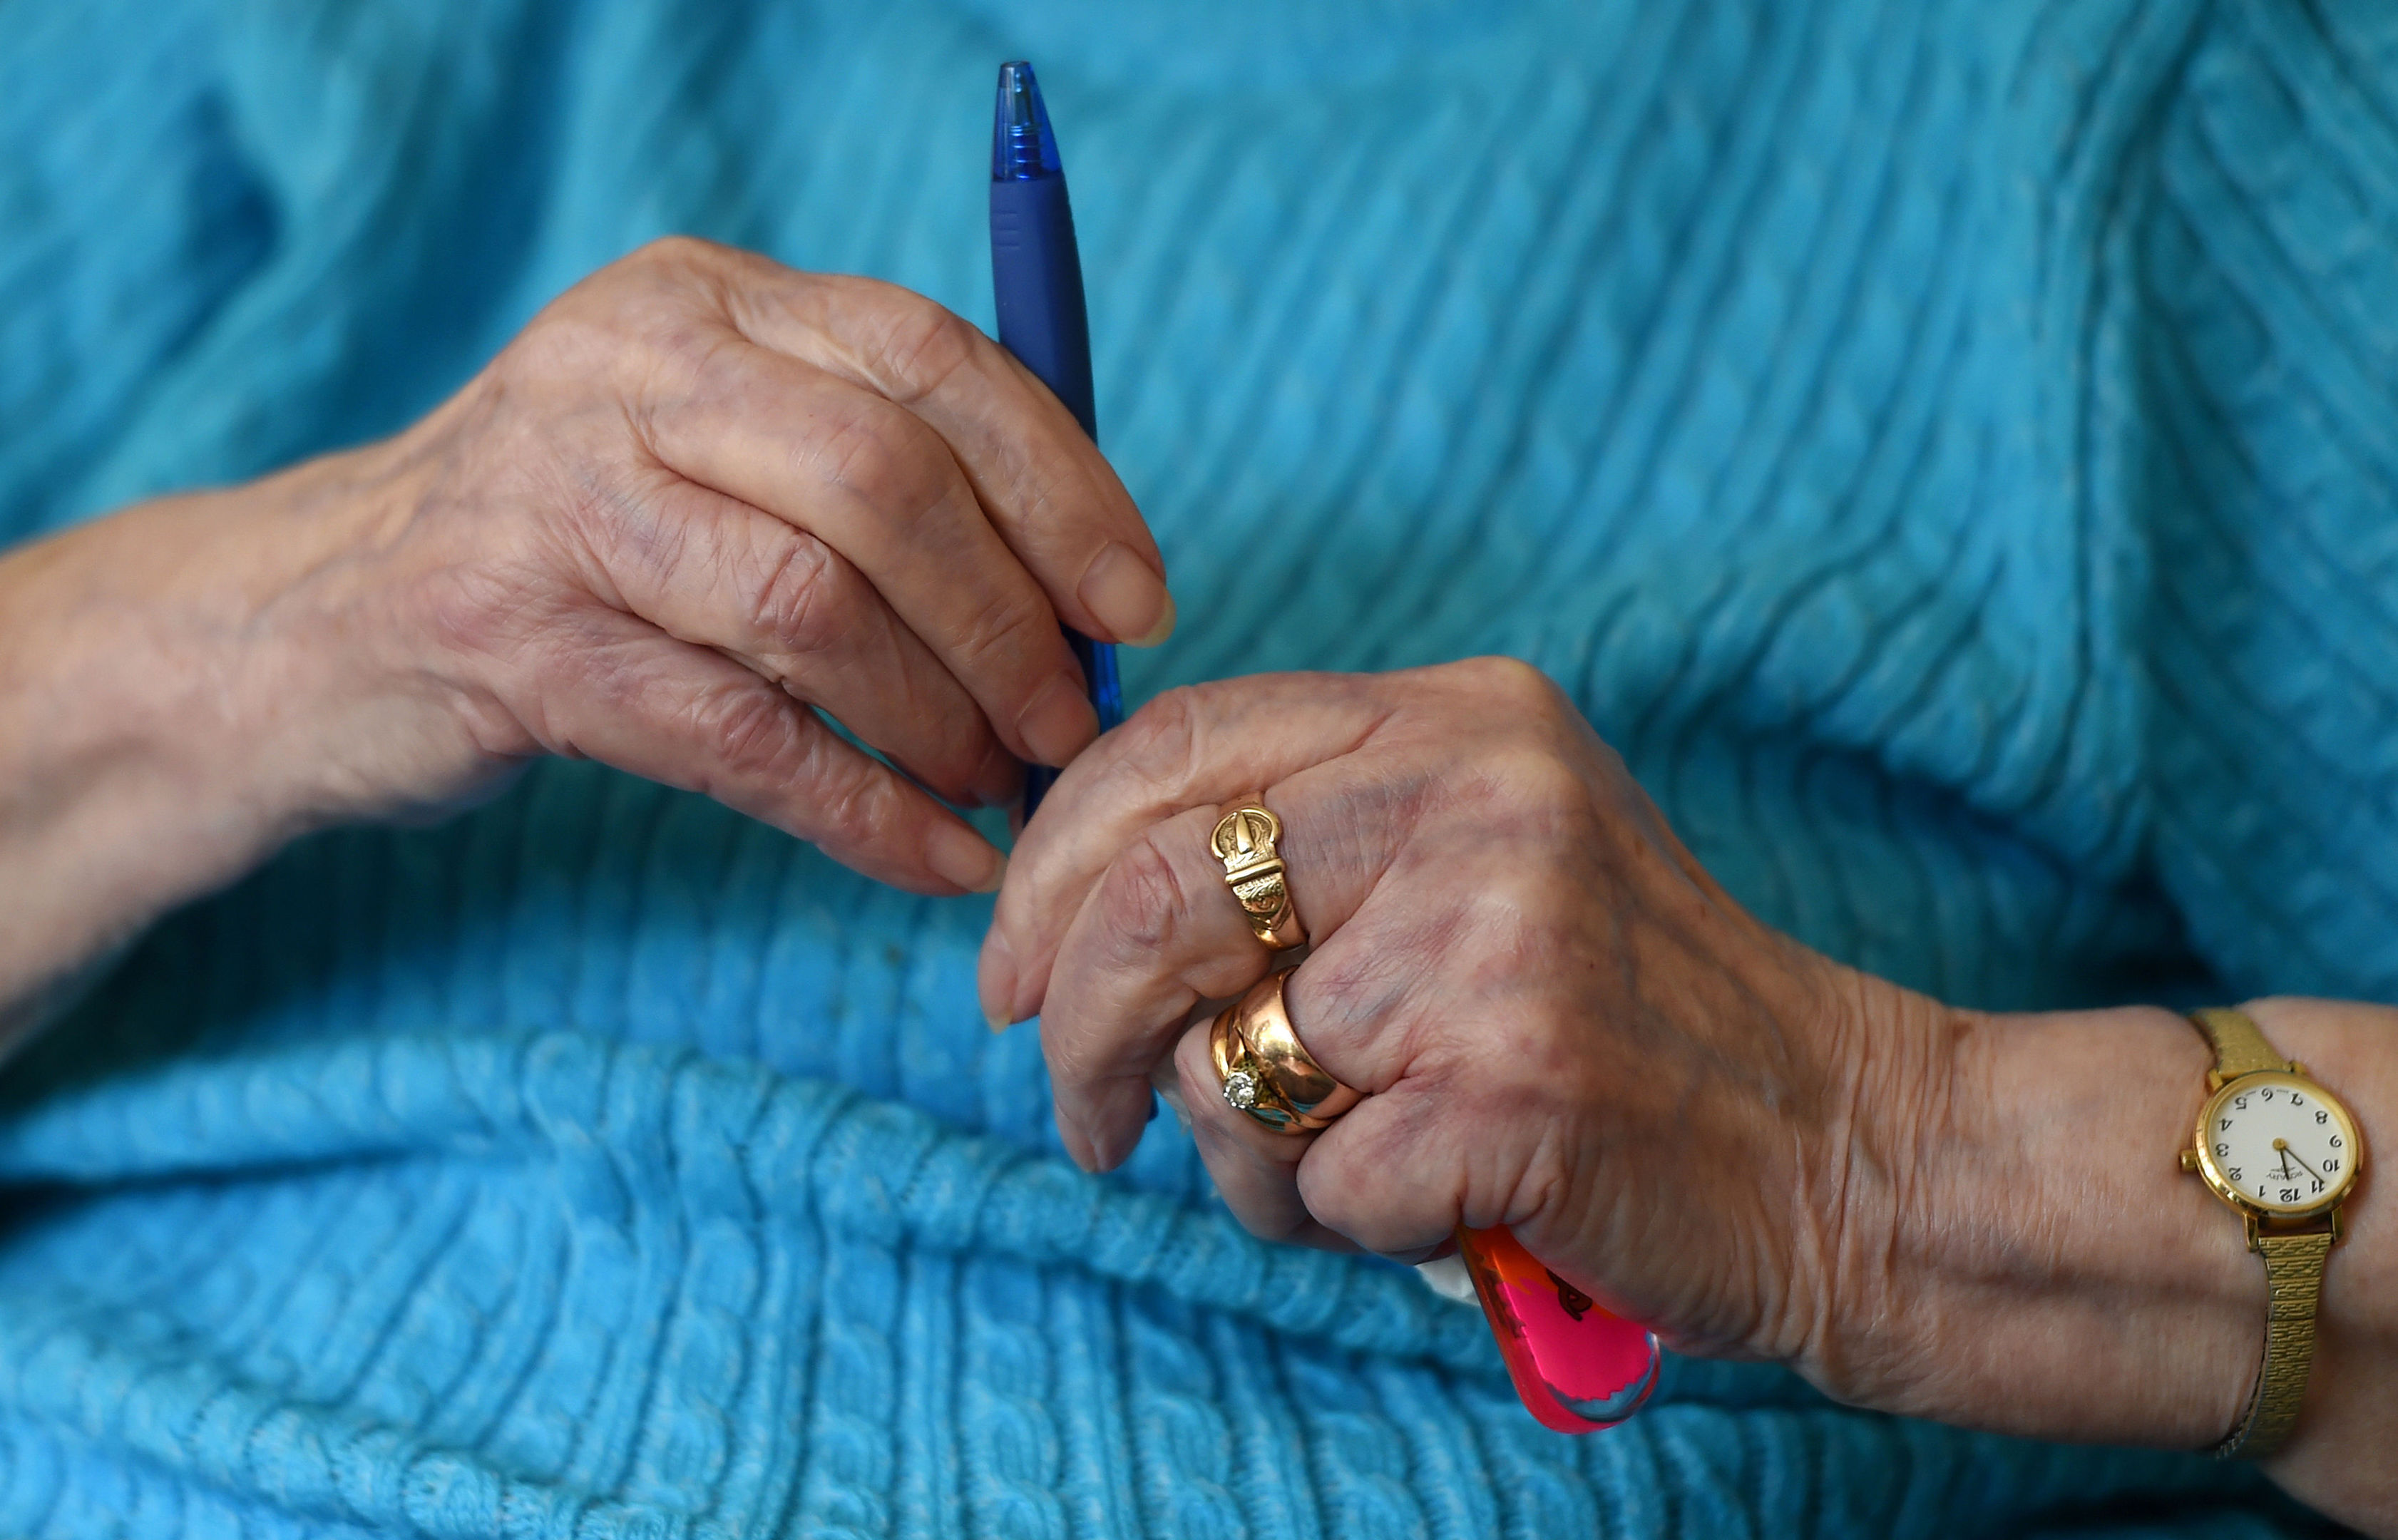 More than two-fifths of older people believe they have been targeted by scammers, with single people more likely to be tricked than their married counterparts, according to a new study. (Joe Giddens/PA Wire)